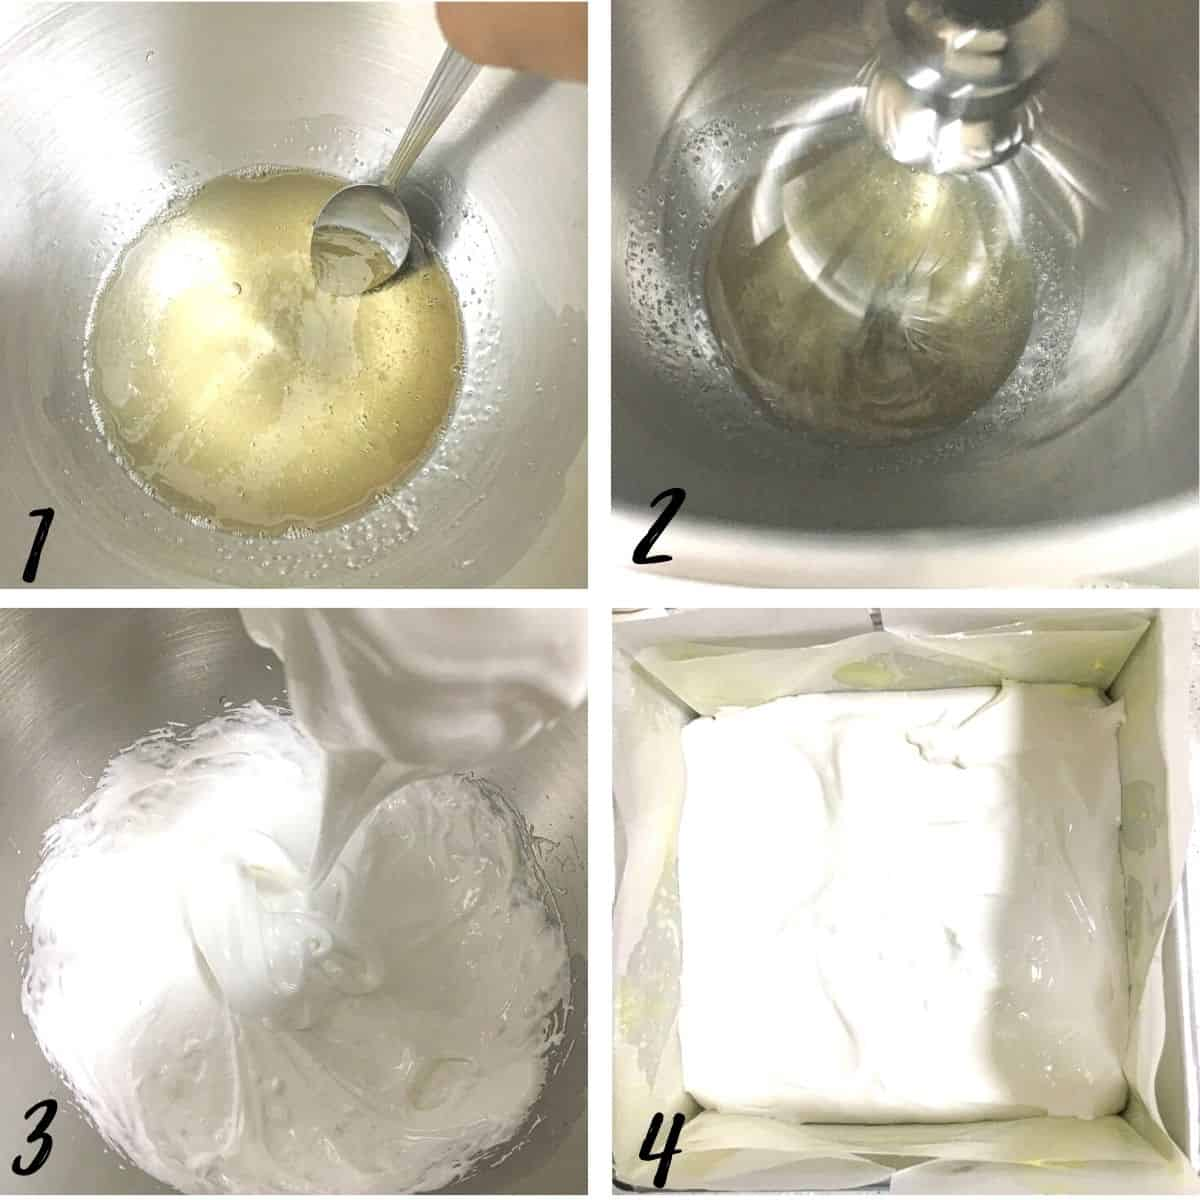 A poster of 4 images show how to add sugar syrup into dissolved gelatin to make marshmallows